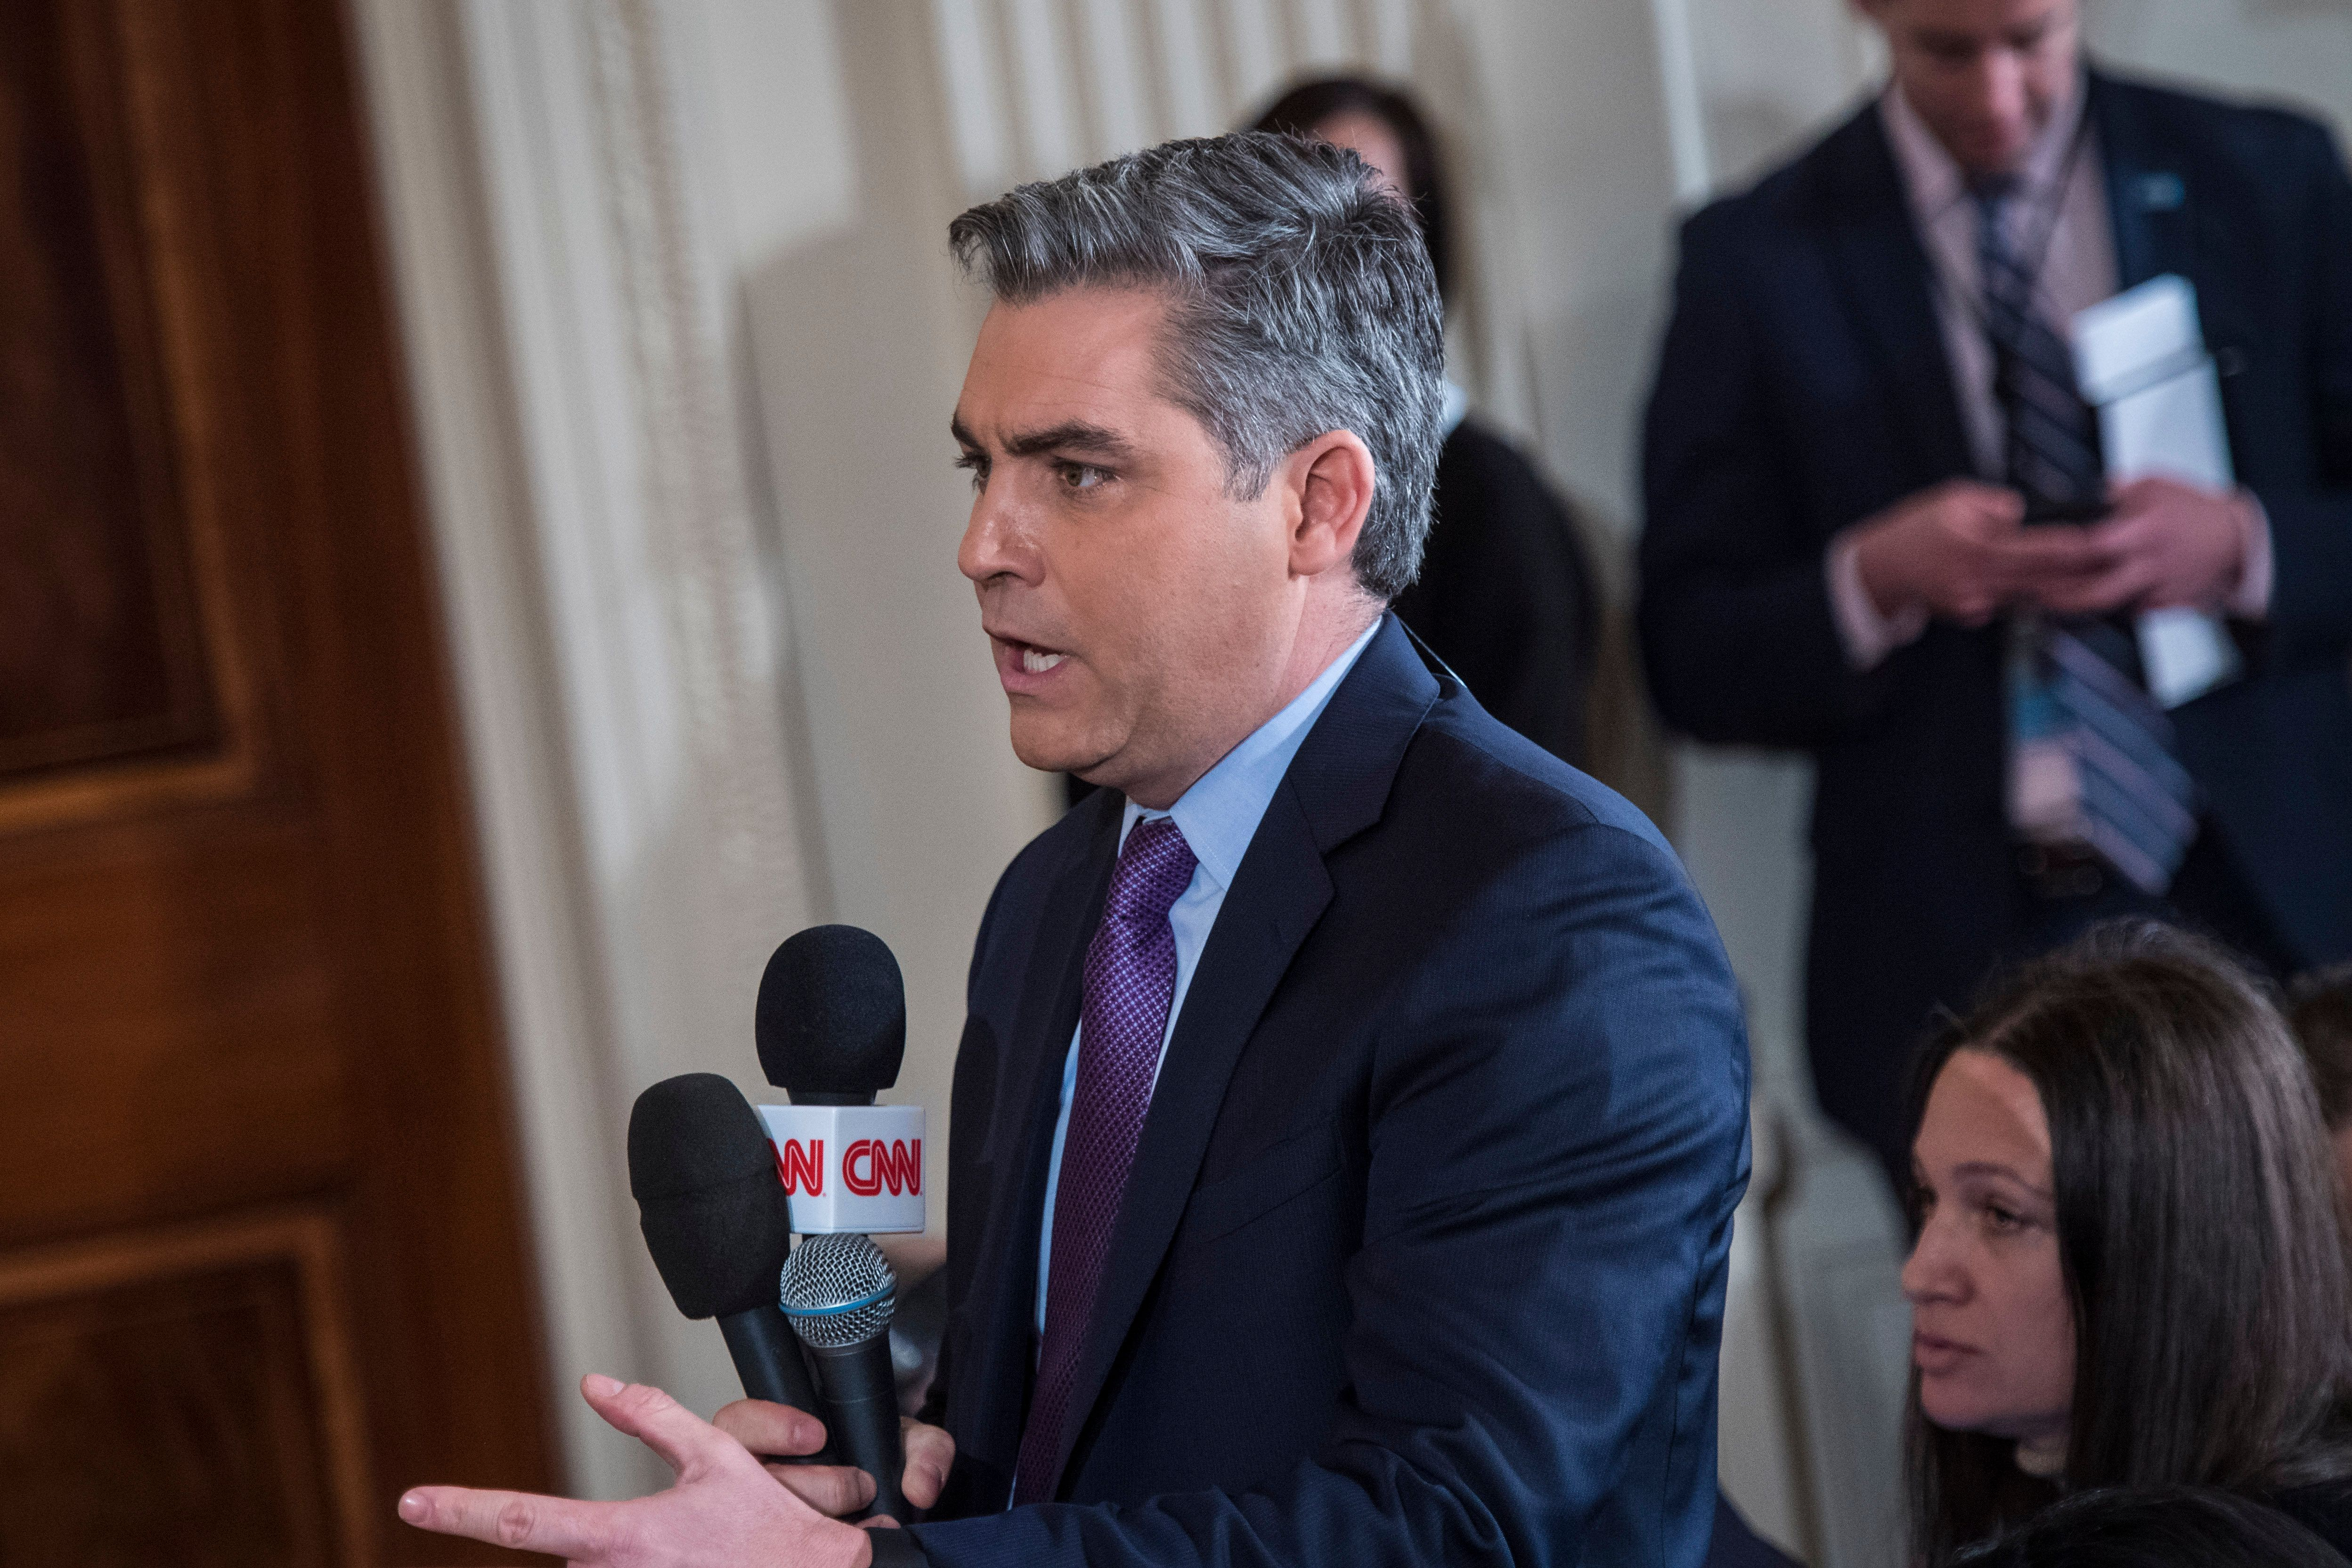 WASHINGTON, DC - FEBRUARY 16: Jim Acosta of CNN asks President Donald Trump a question during a press conference in the East Room of the White House in Washington, DC on Thursday, Feb. 16, 2017. (Photo by Jabin Botsford/The Washington Post via Getty Images)